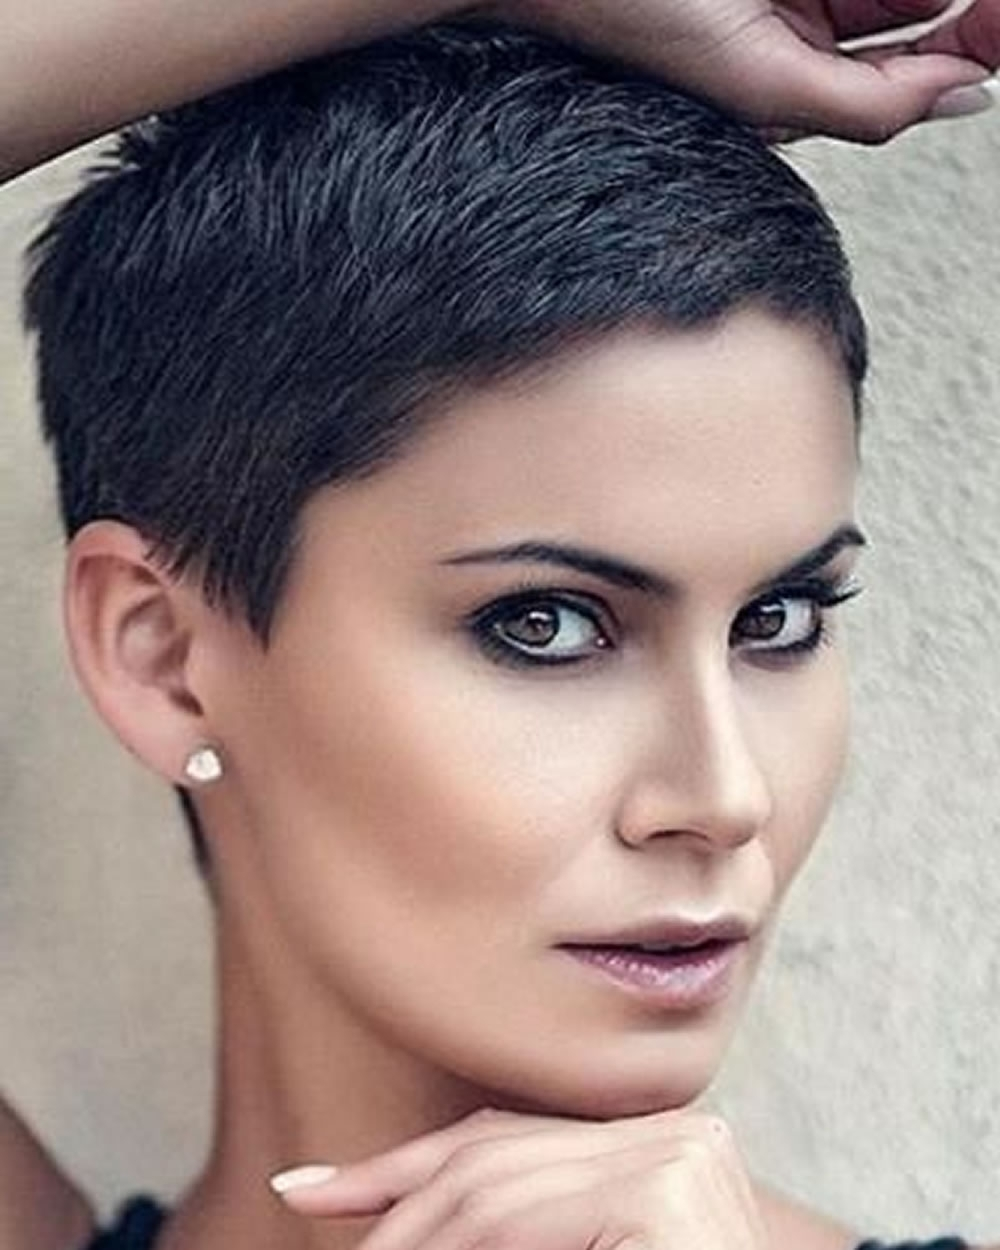 Super Very Short Pixie Haircuts & Hair Colors For 2018 2019 Within Latest Extremely Short Pixie Hairstyles (View 13 of 15)